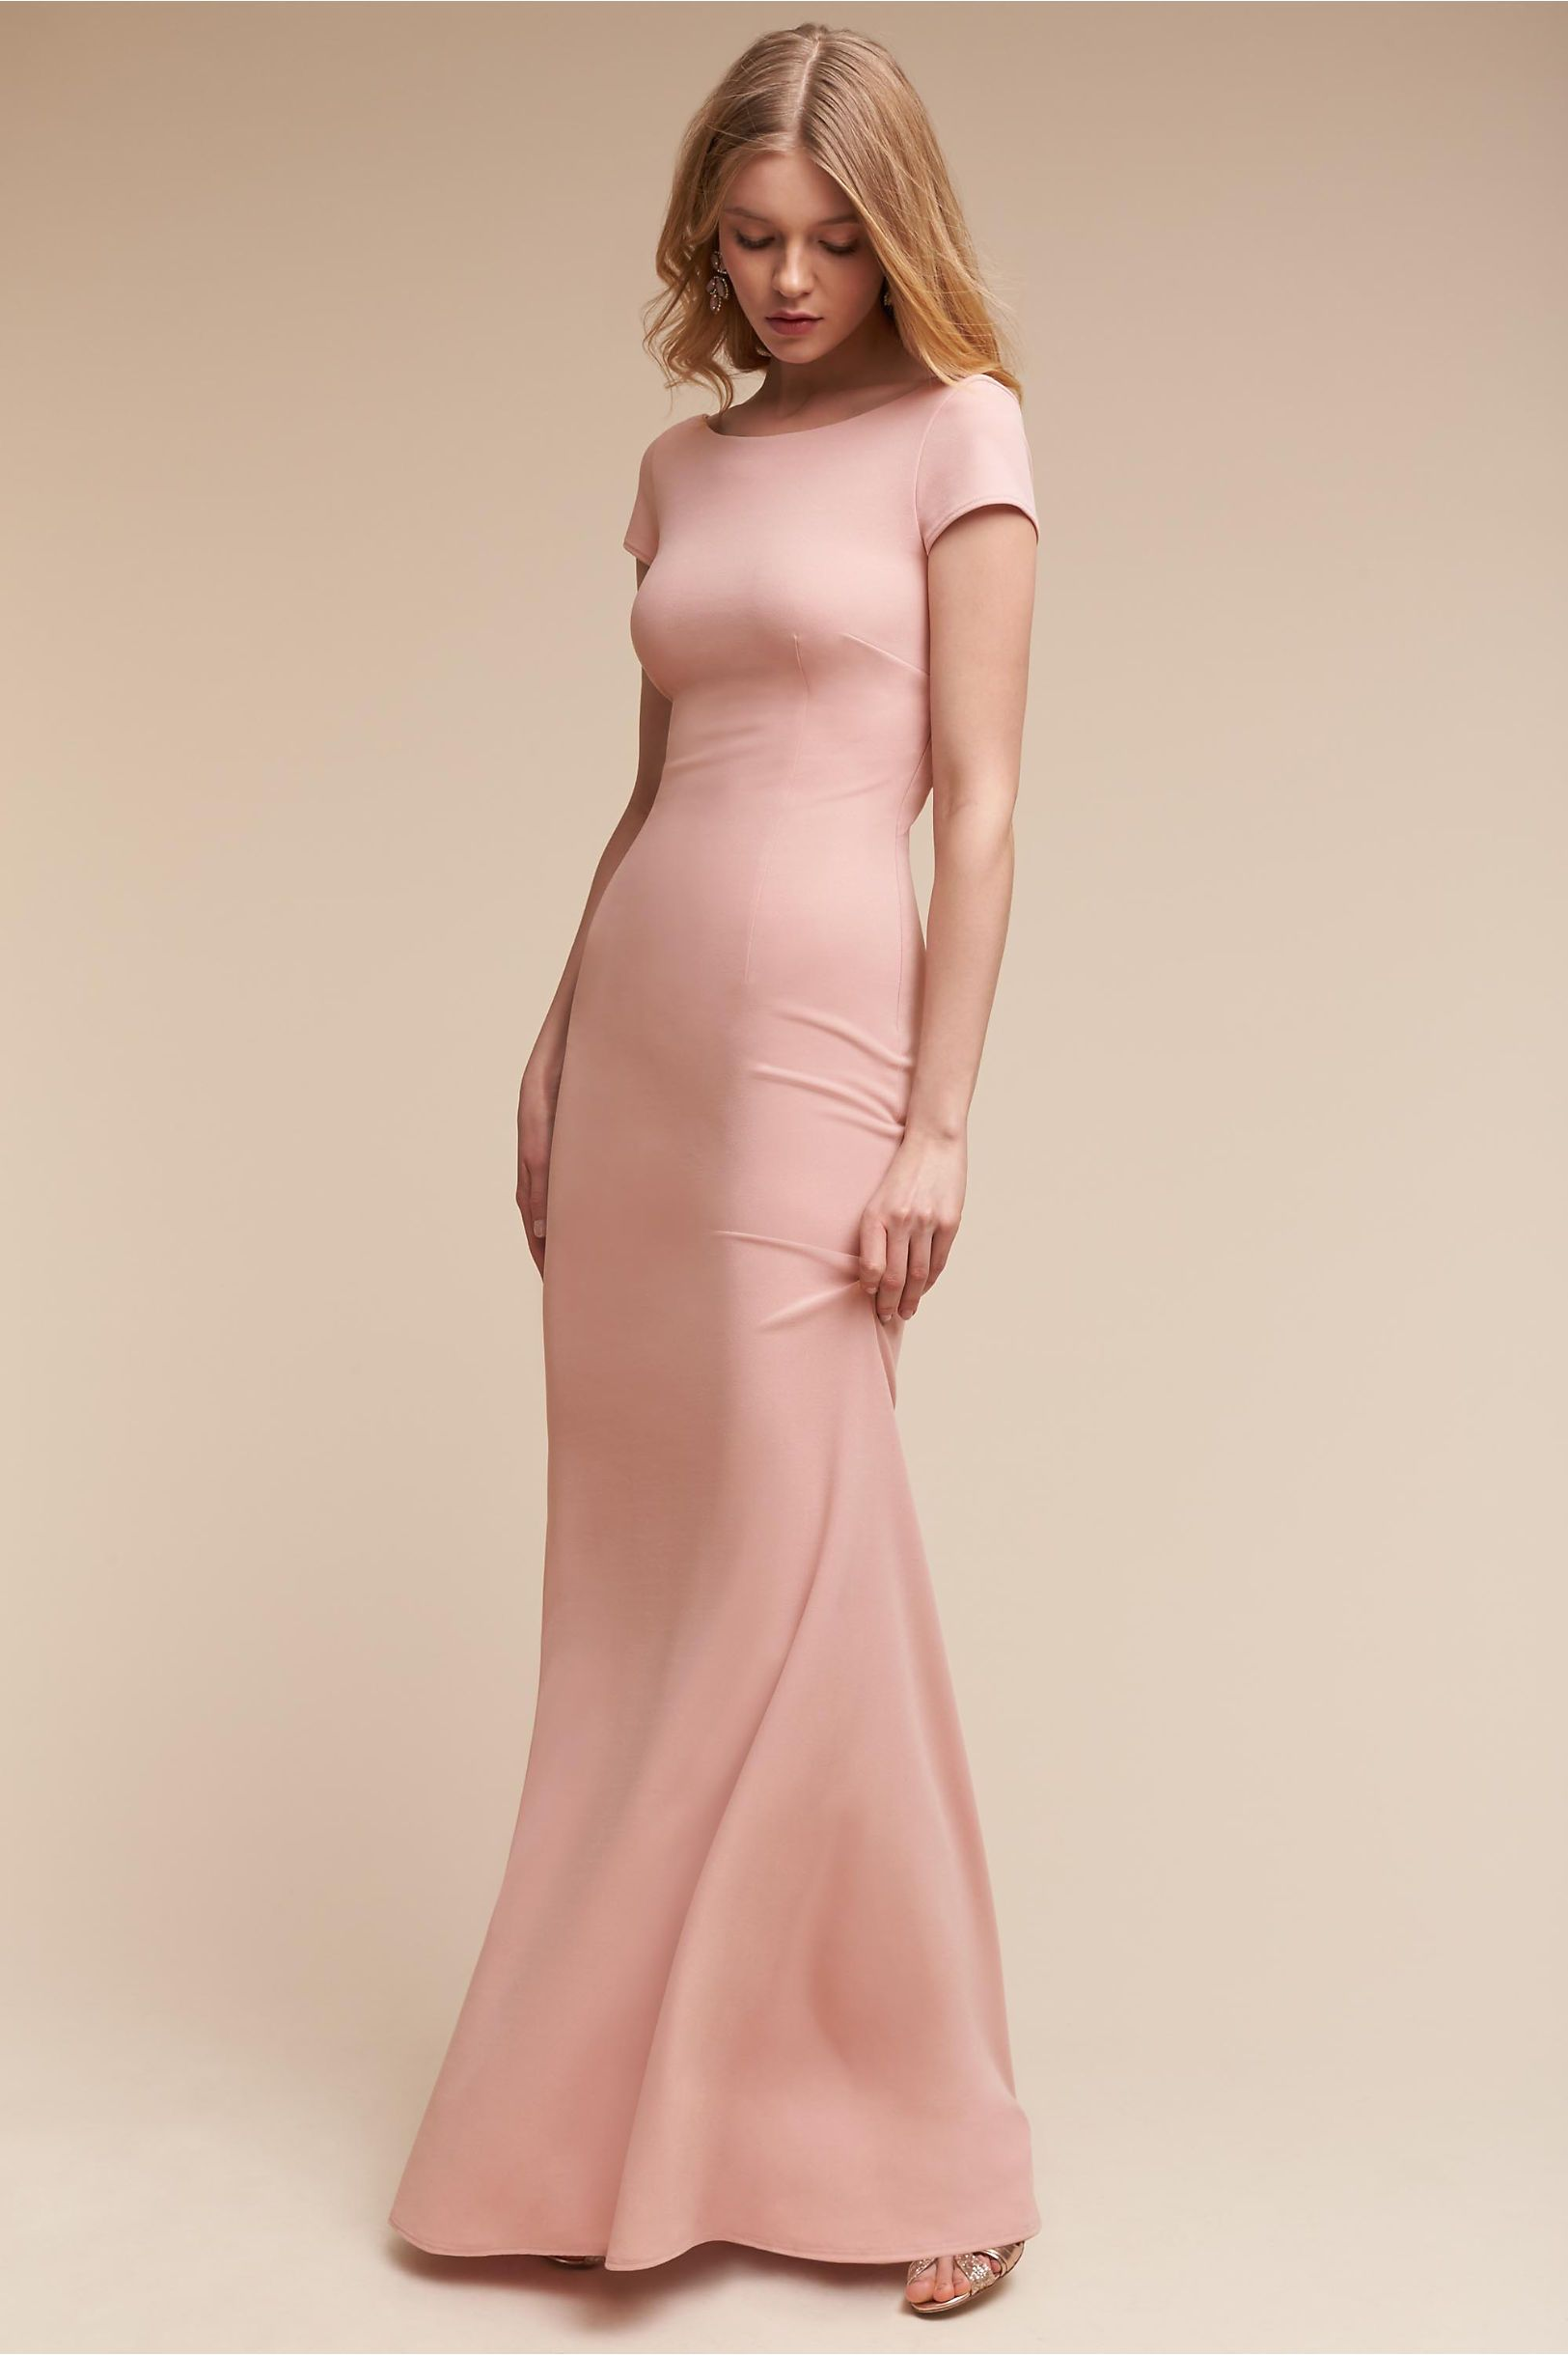 https://s7d1.scene7.com/is/image/BHLDN/41365537_065_b?$zoom-xl ...